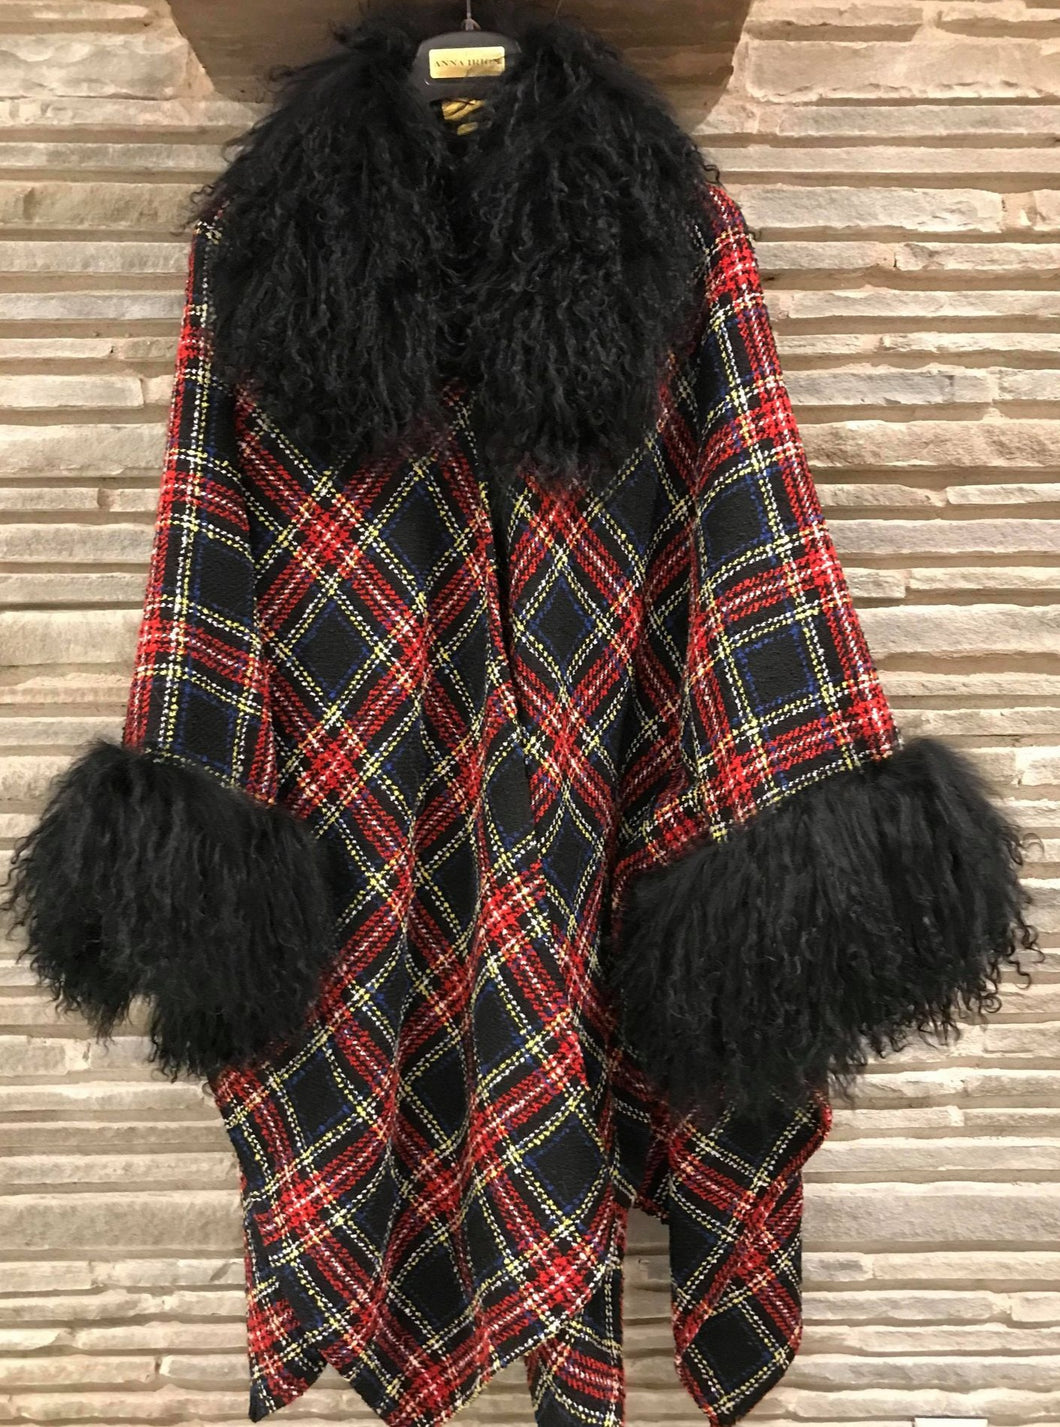 Loro Stuart Plaid 100% Italian Cashmere Cape with long curly Mongolian lamb